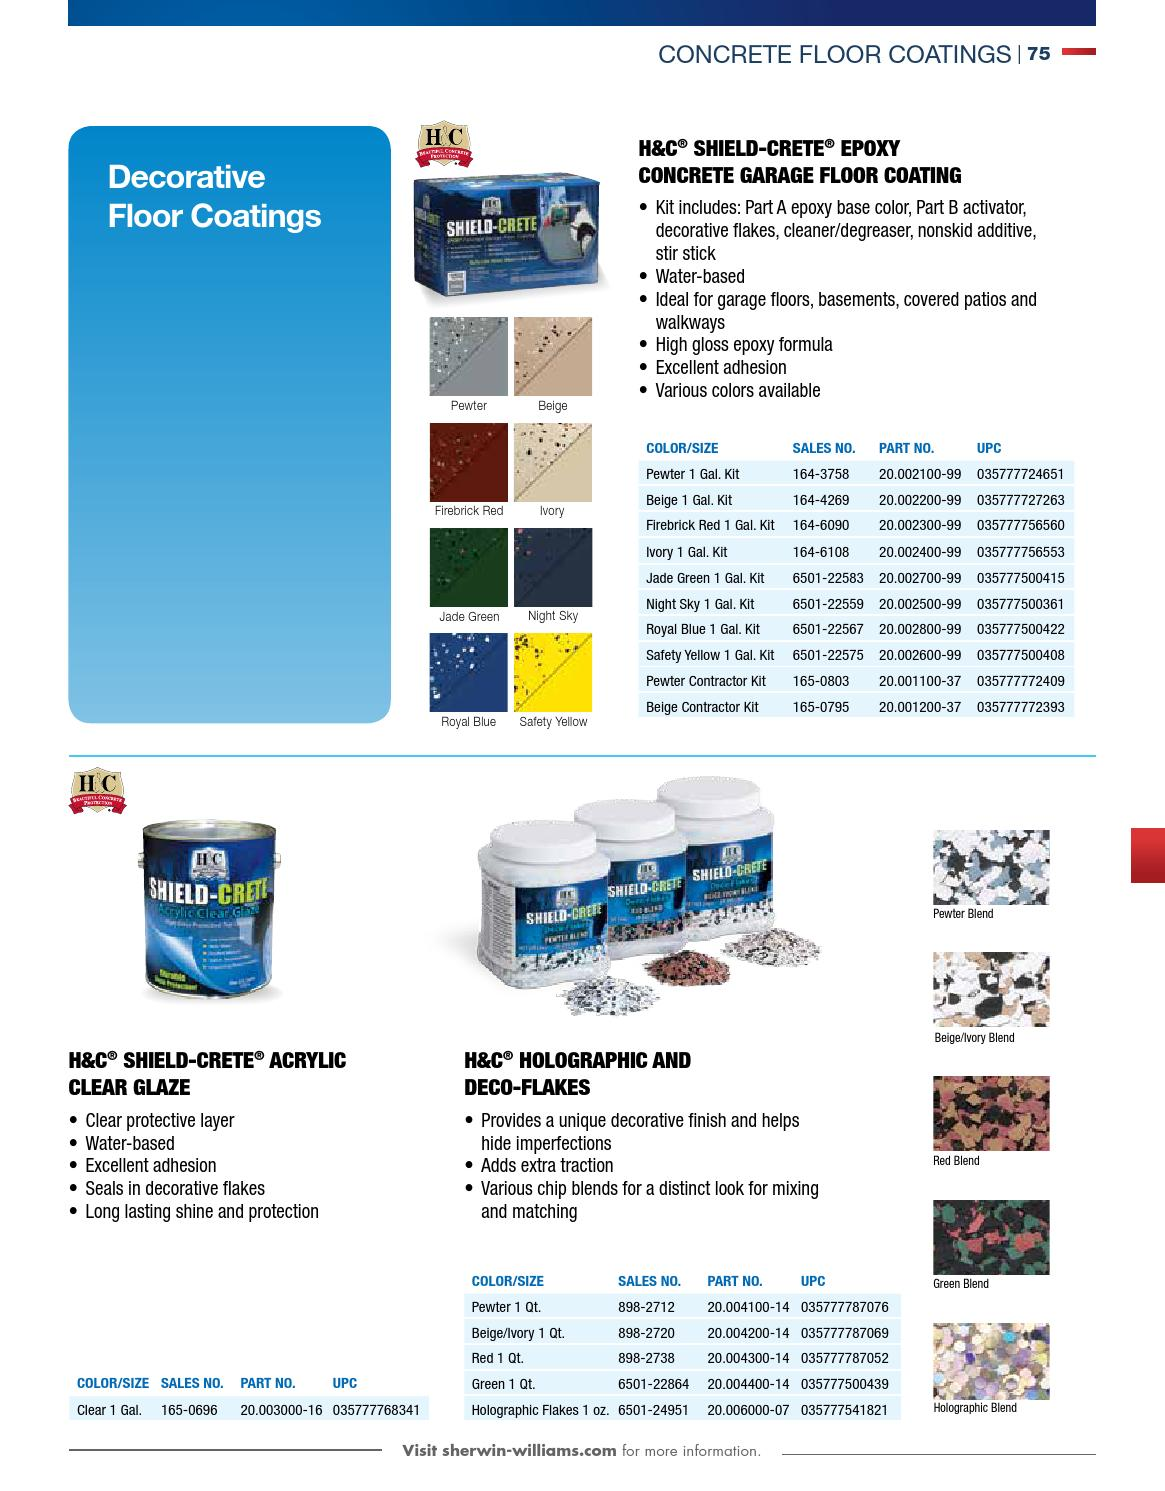 Concrete Catalog 2015 By Sherwin Williams Page 81 Issuu